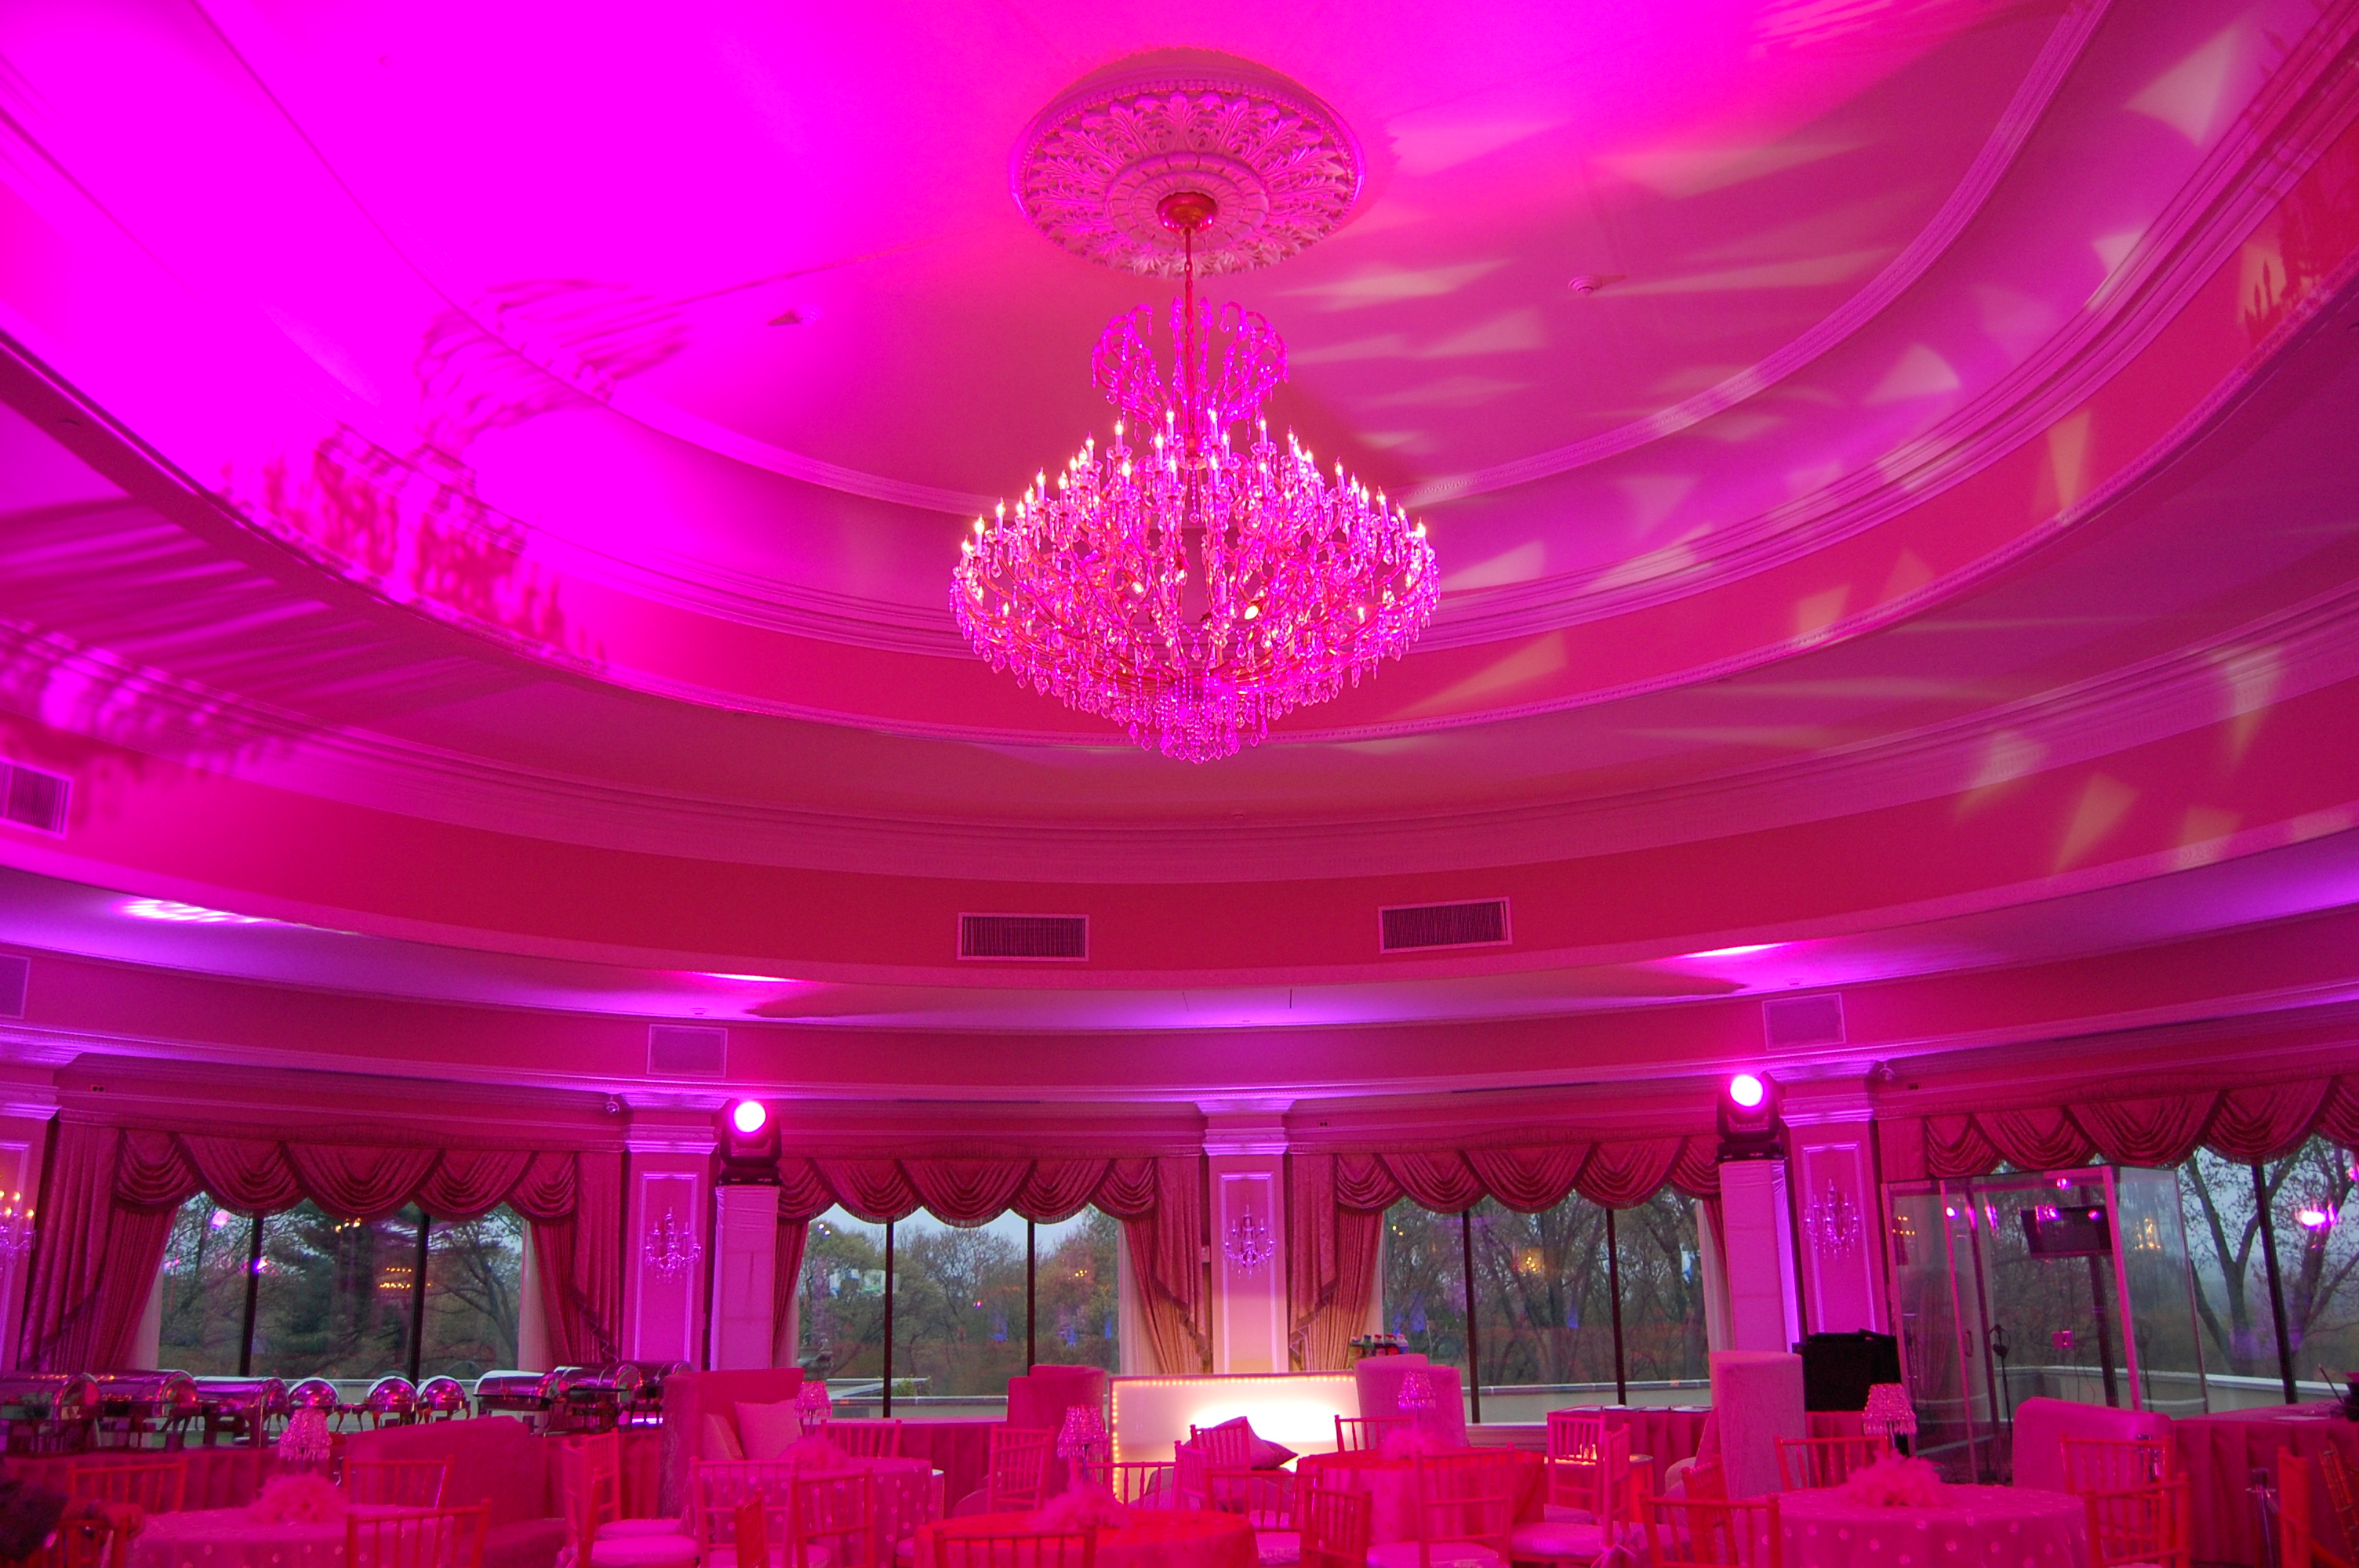 Pink Ceiling Uplighting